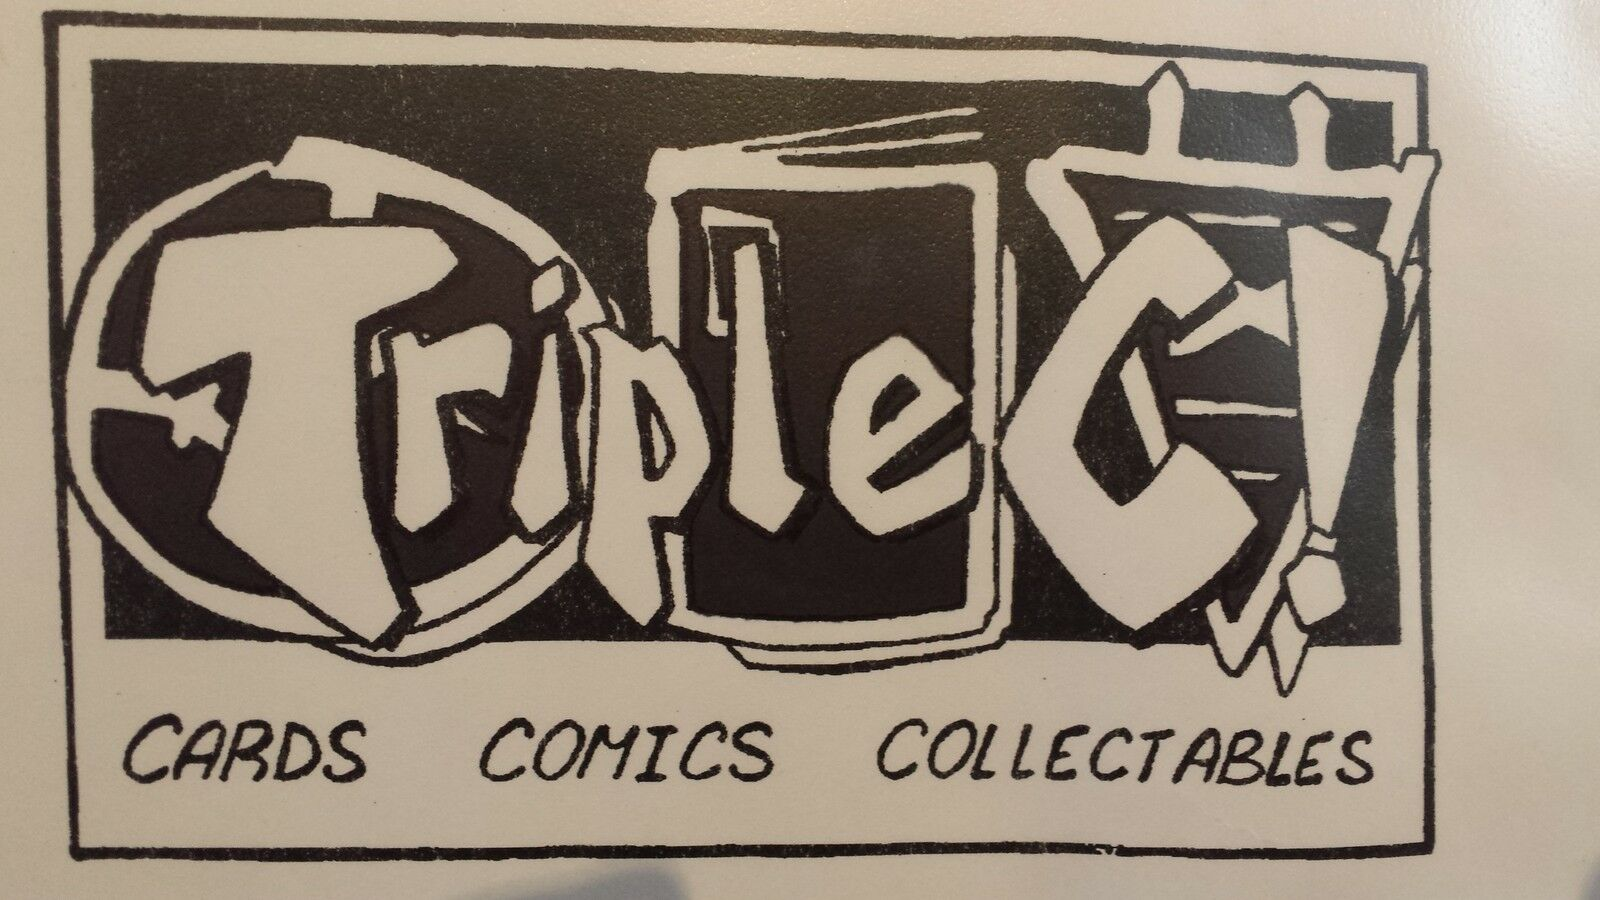 triplec1 Cards and Collectables